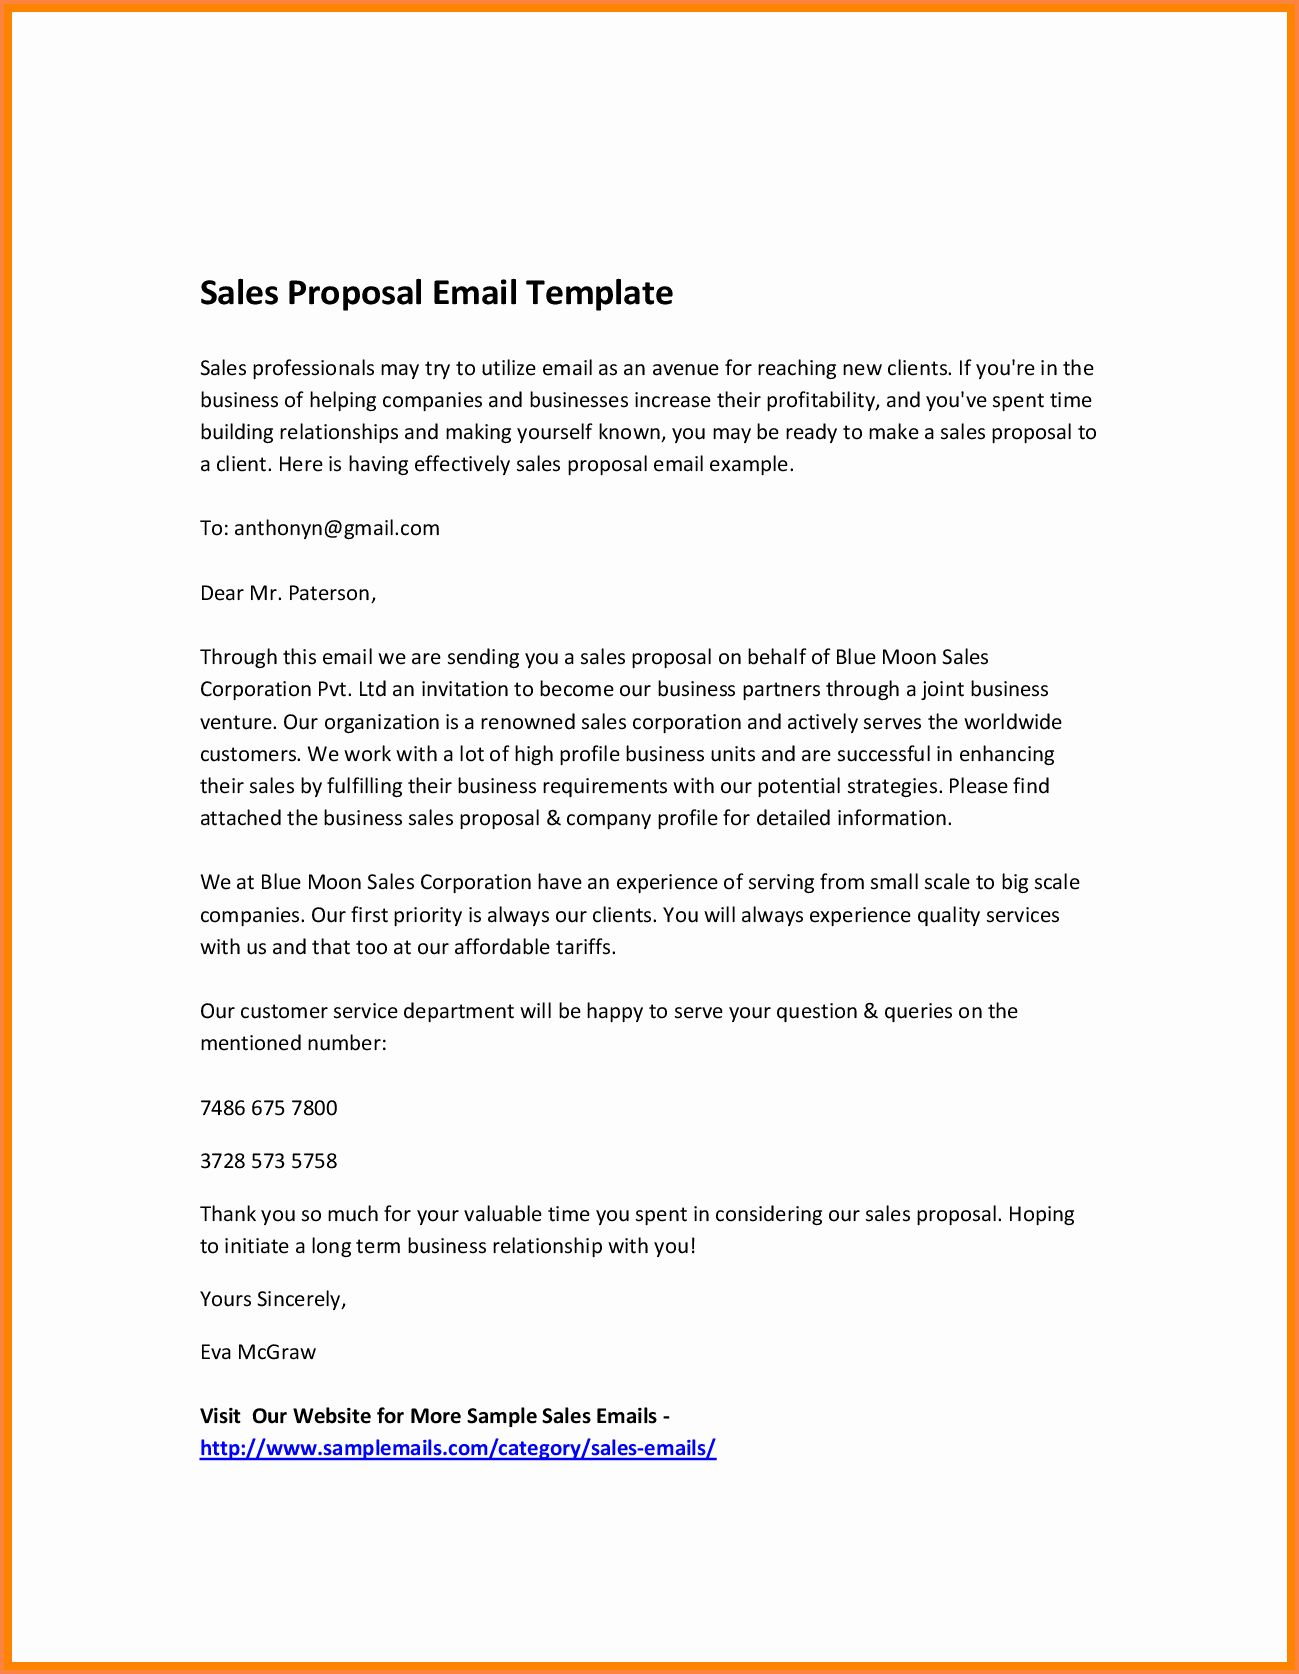 Business Proposal Email Template In 2020 Sales Proposal